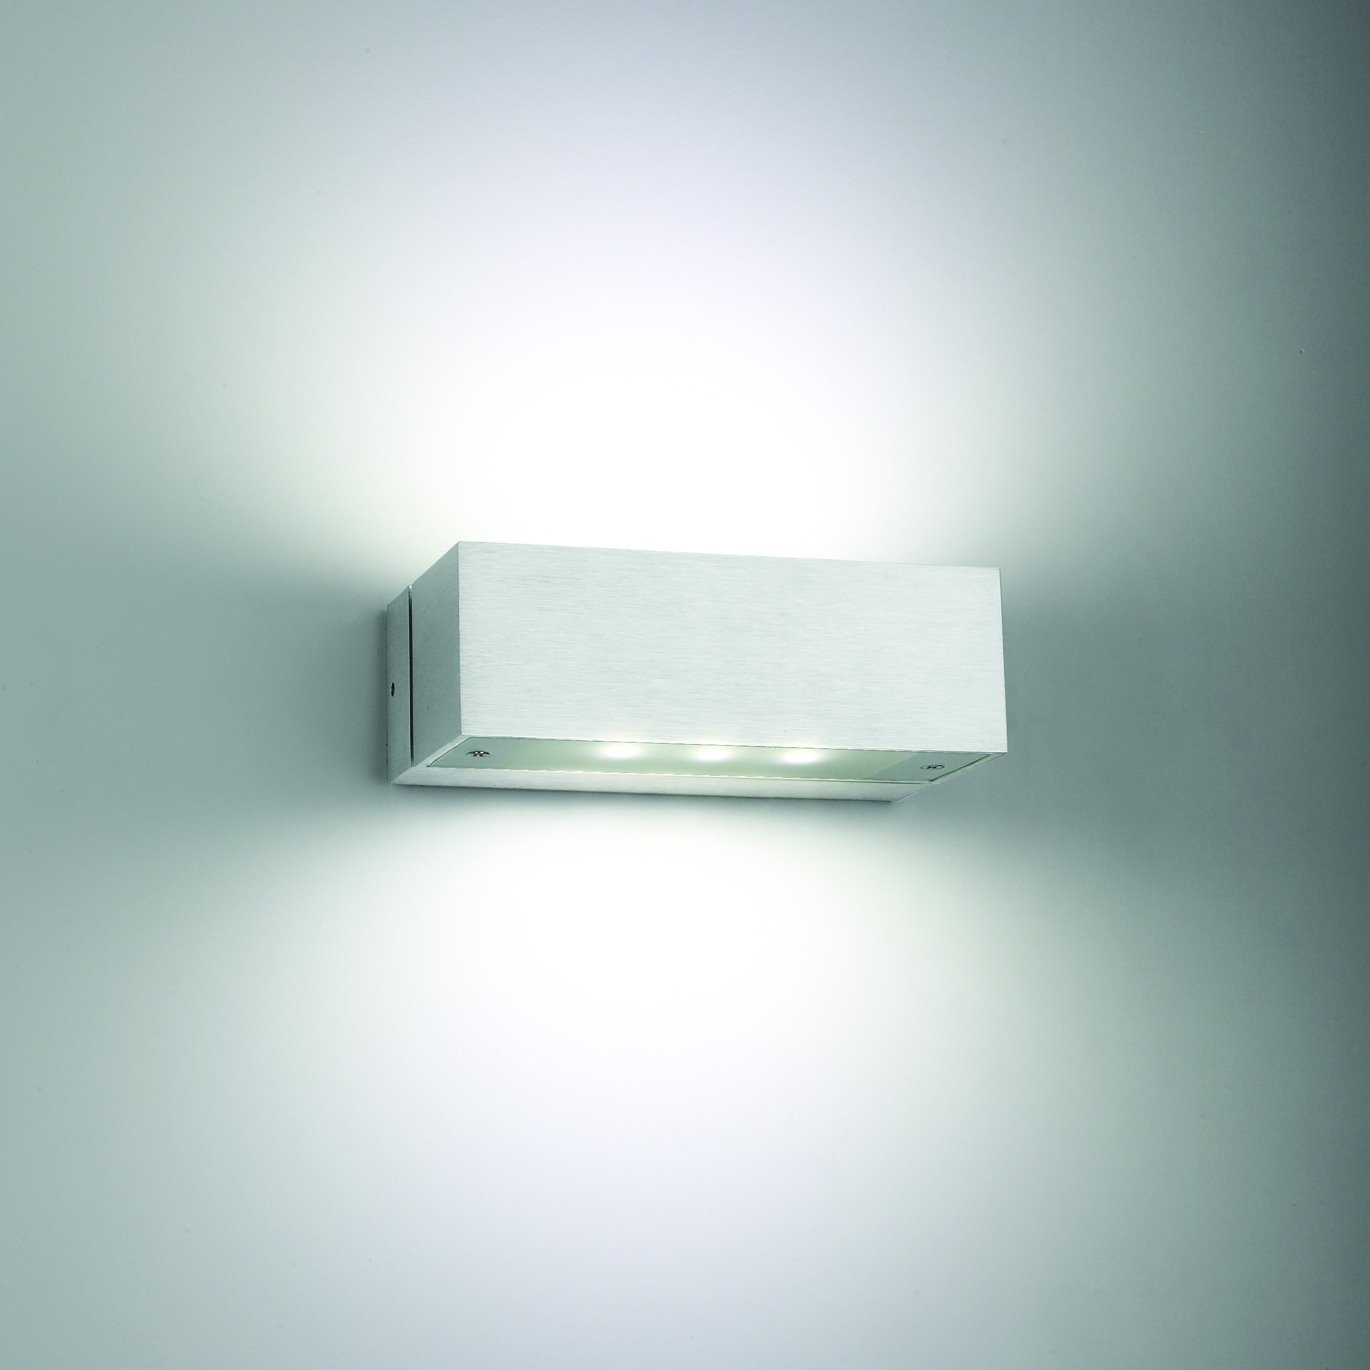 Wandbeleuchtung Innen Led Wall Light Indoor The Necessary Electrical Technique